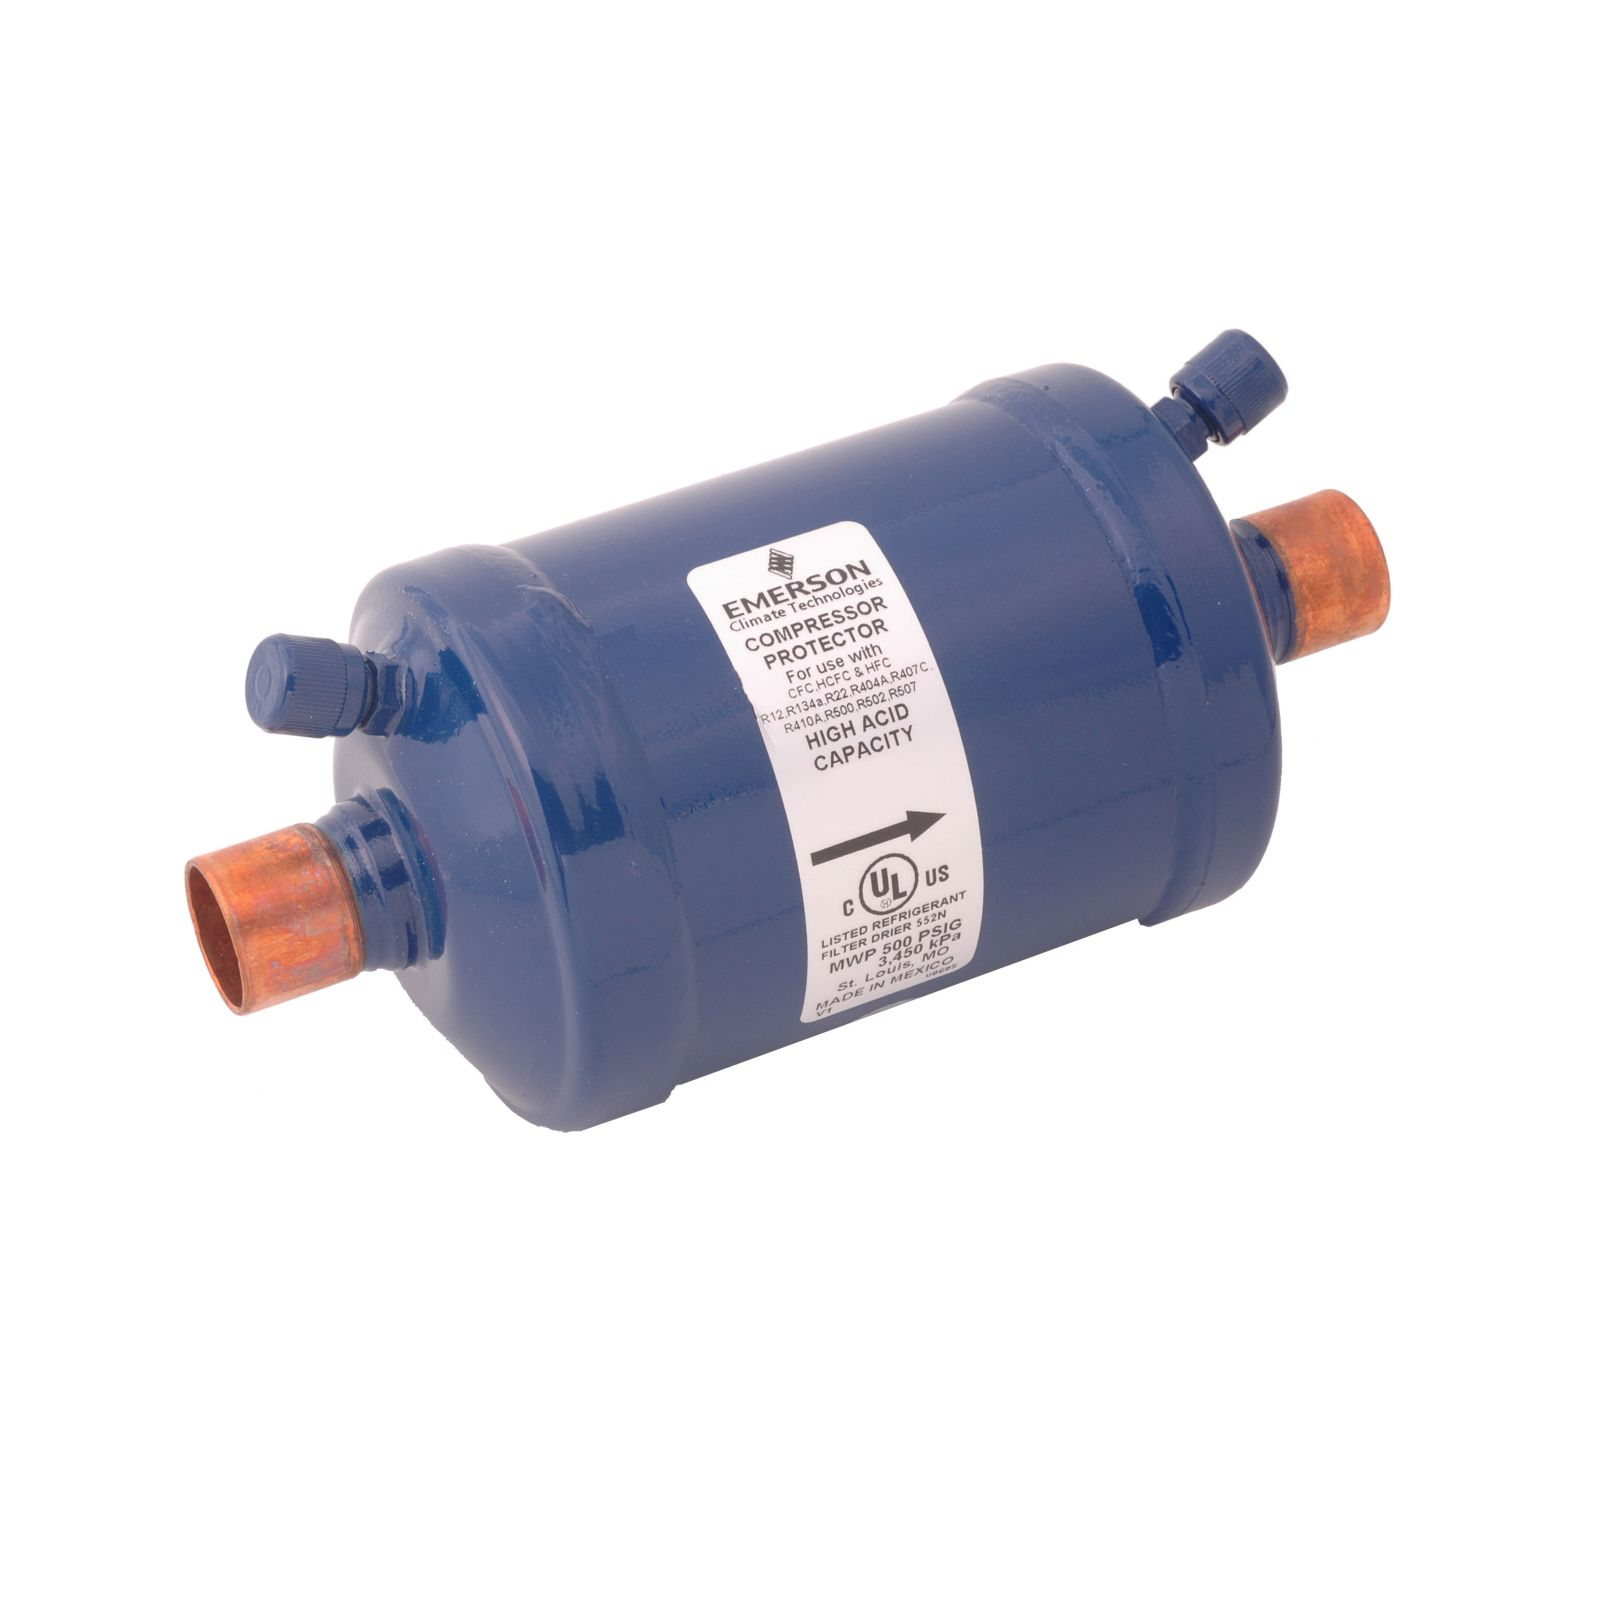 "Emerson 049171 - ASD35S5W Premium Dual Access Suction Line Filter Drier, 35 Cubic Inch, 5/8"" ODF Connection"